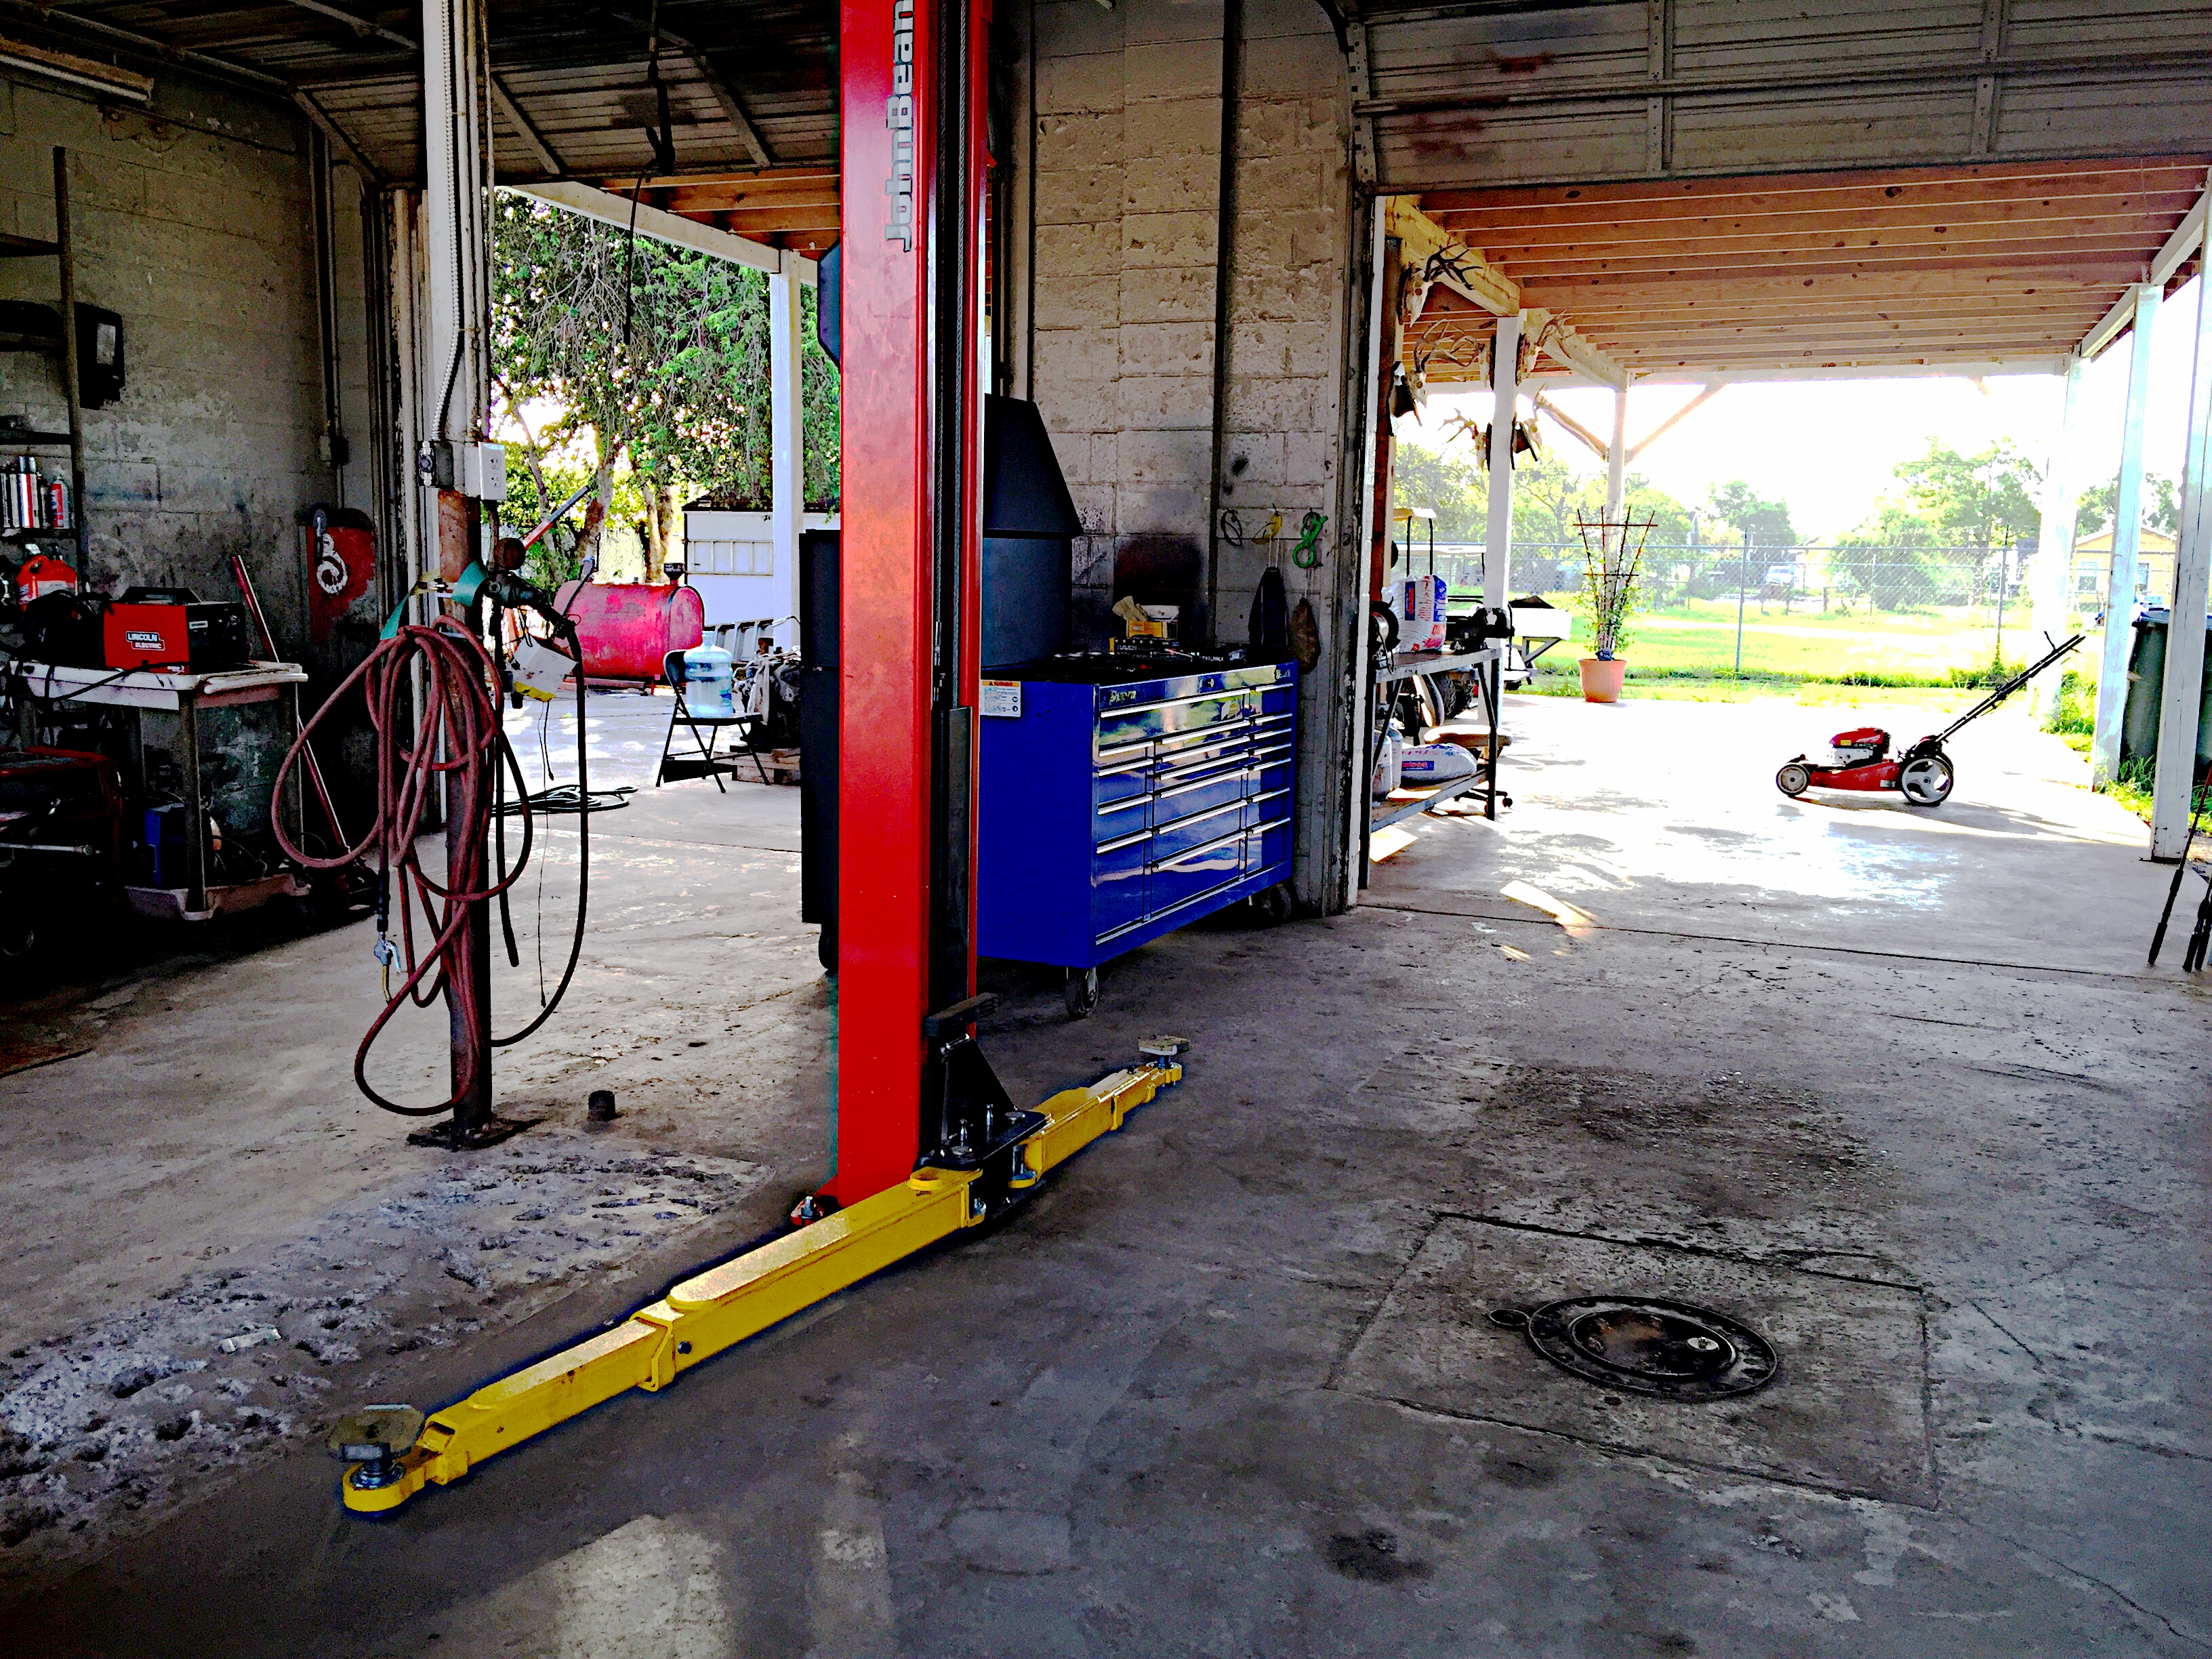 Inside Auto Repair Facility